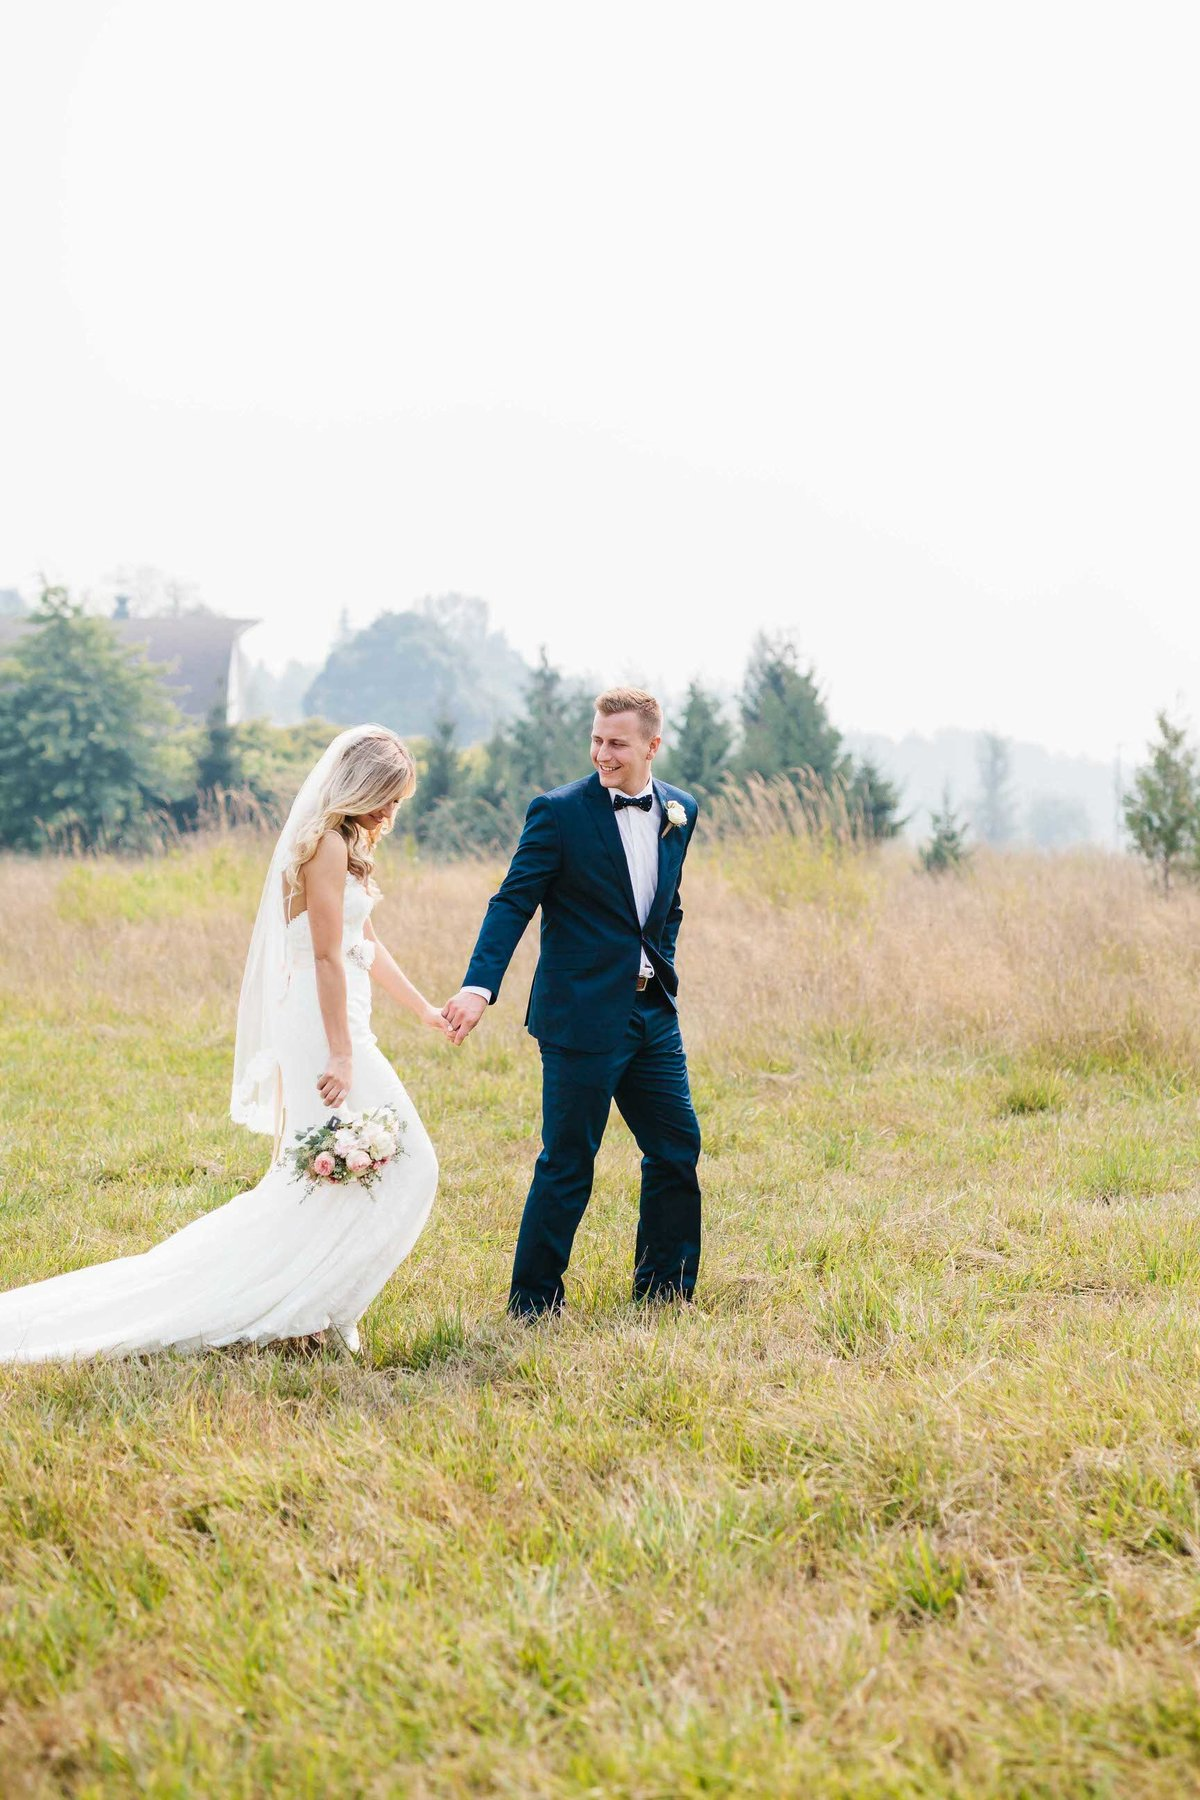 Melissa Kilner Photography Seattle Wedding Photographer 026